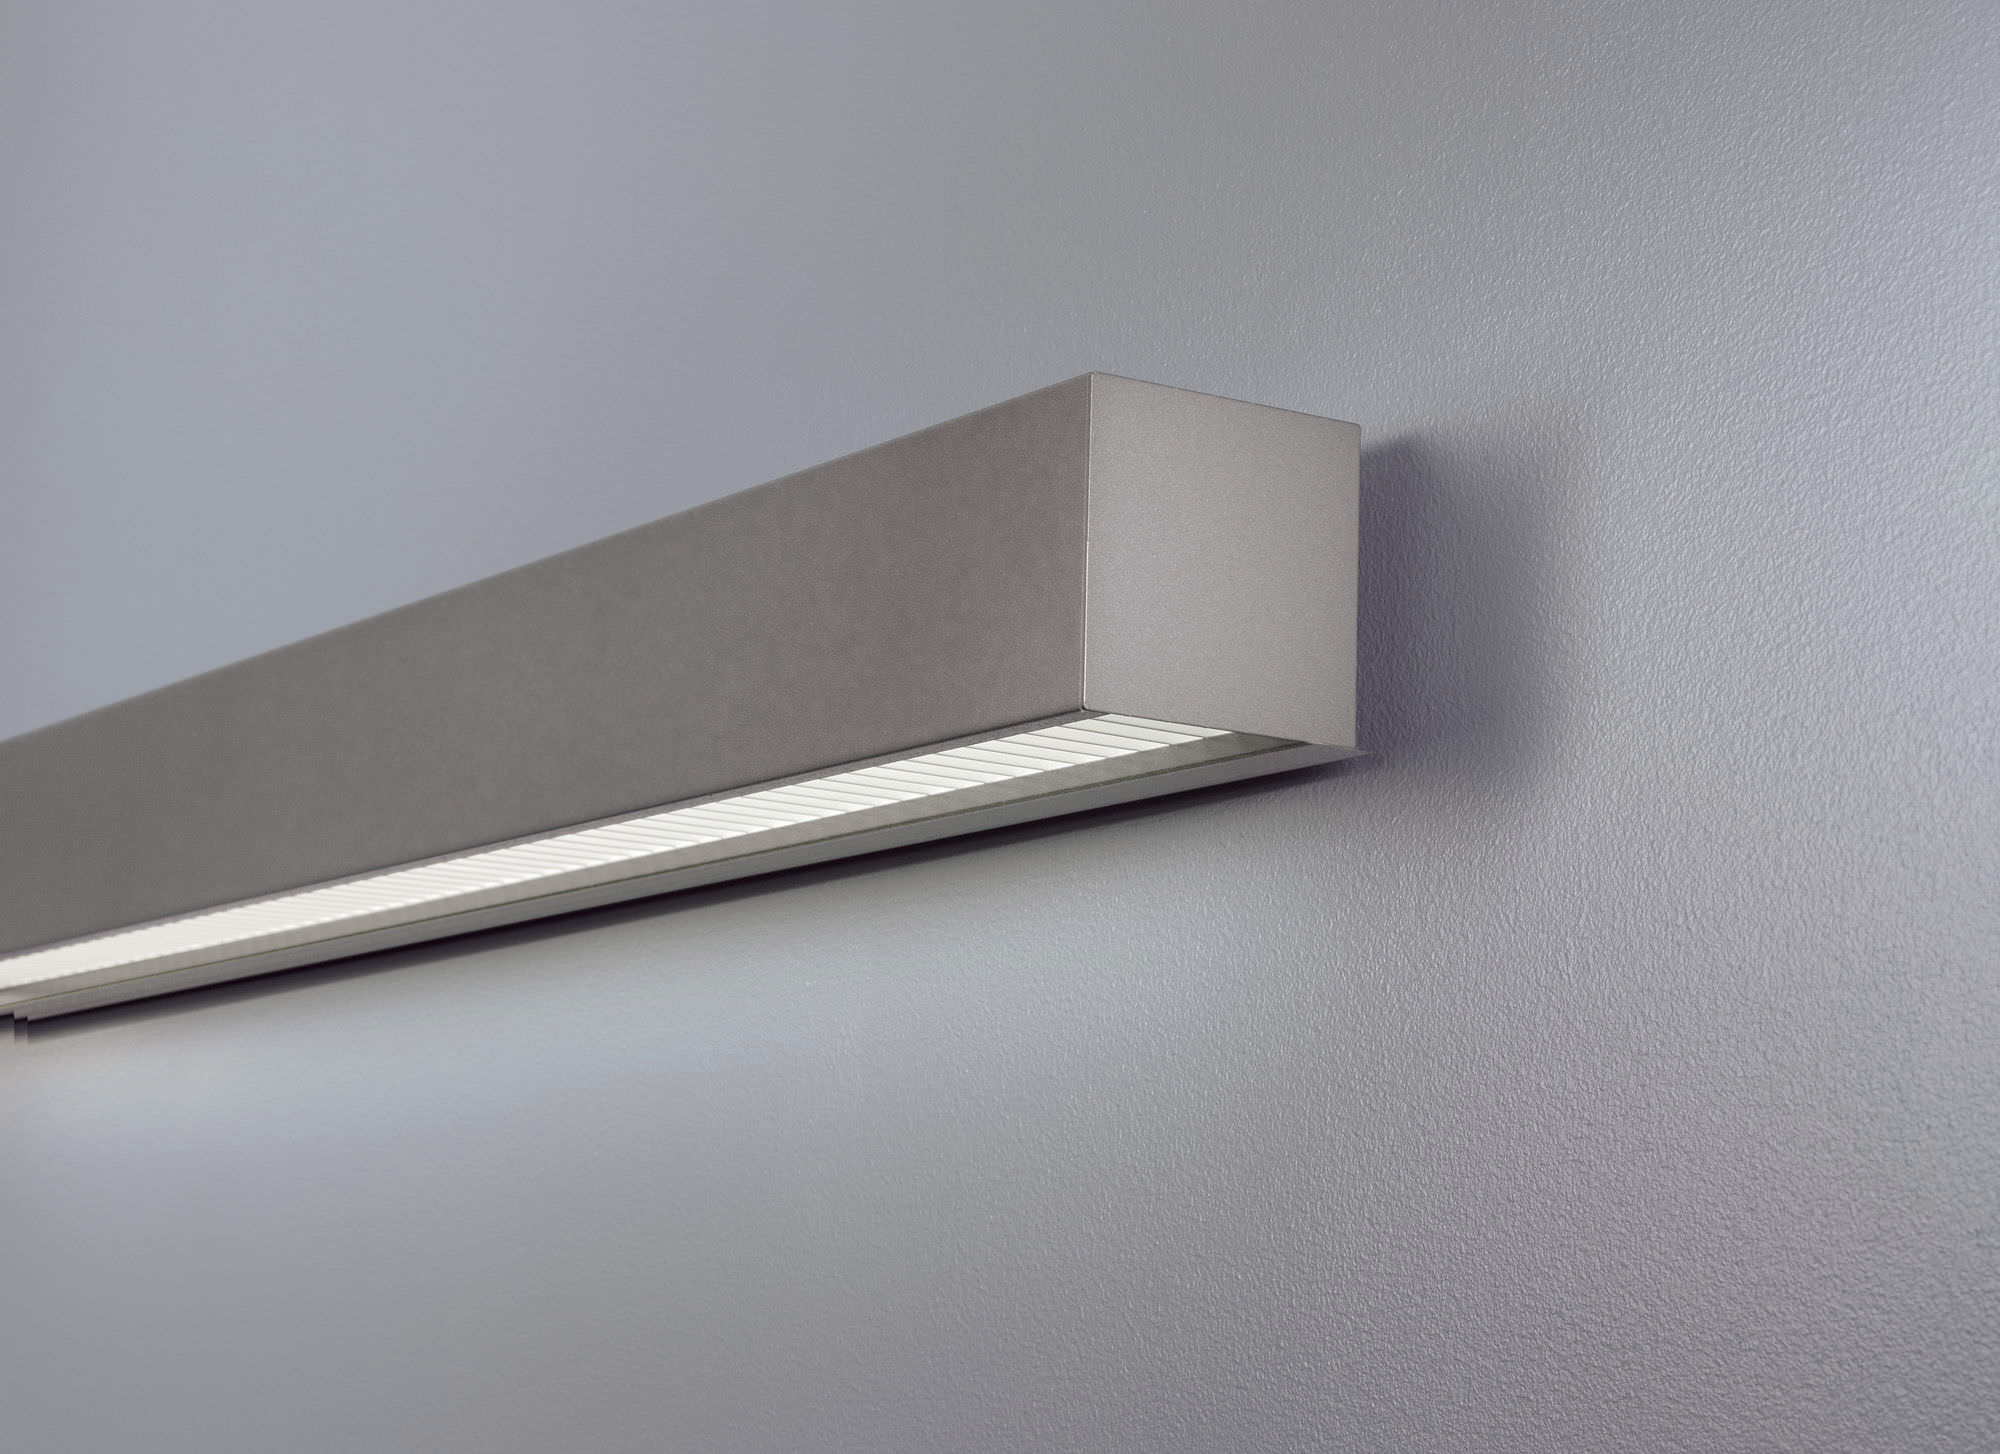 Get the Elite and Modern Home look with interior wall ... on Wall Mounted Decorative Lights id=99853